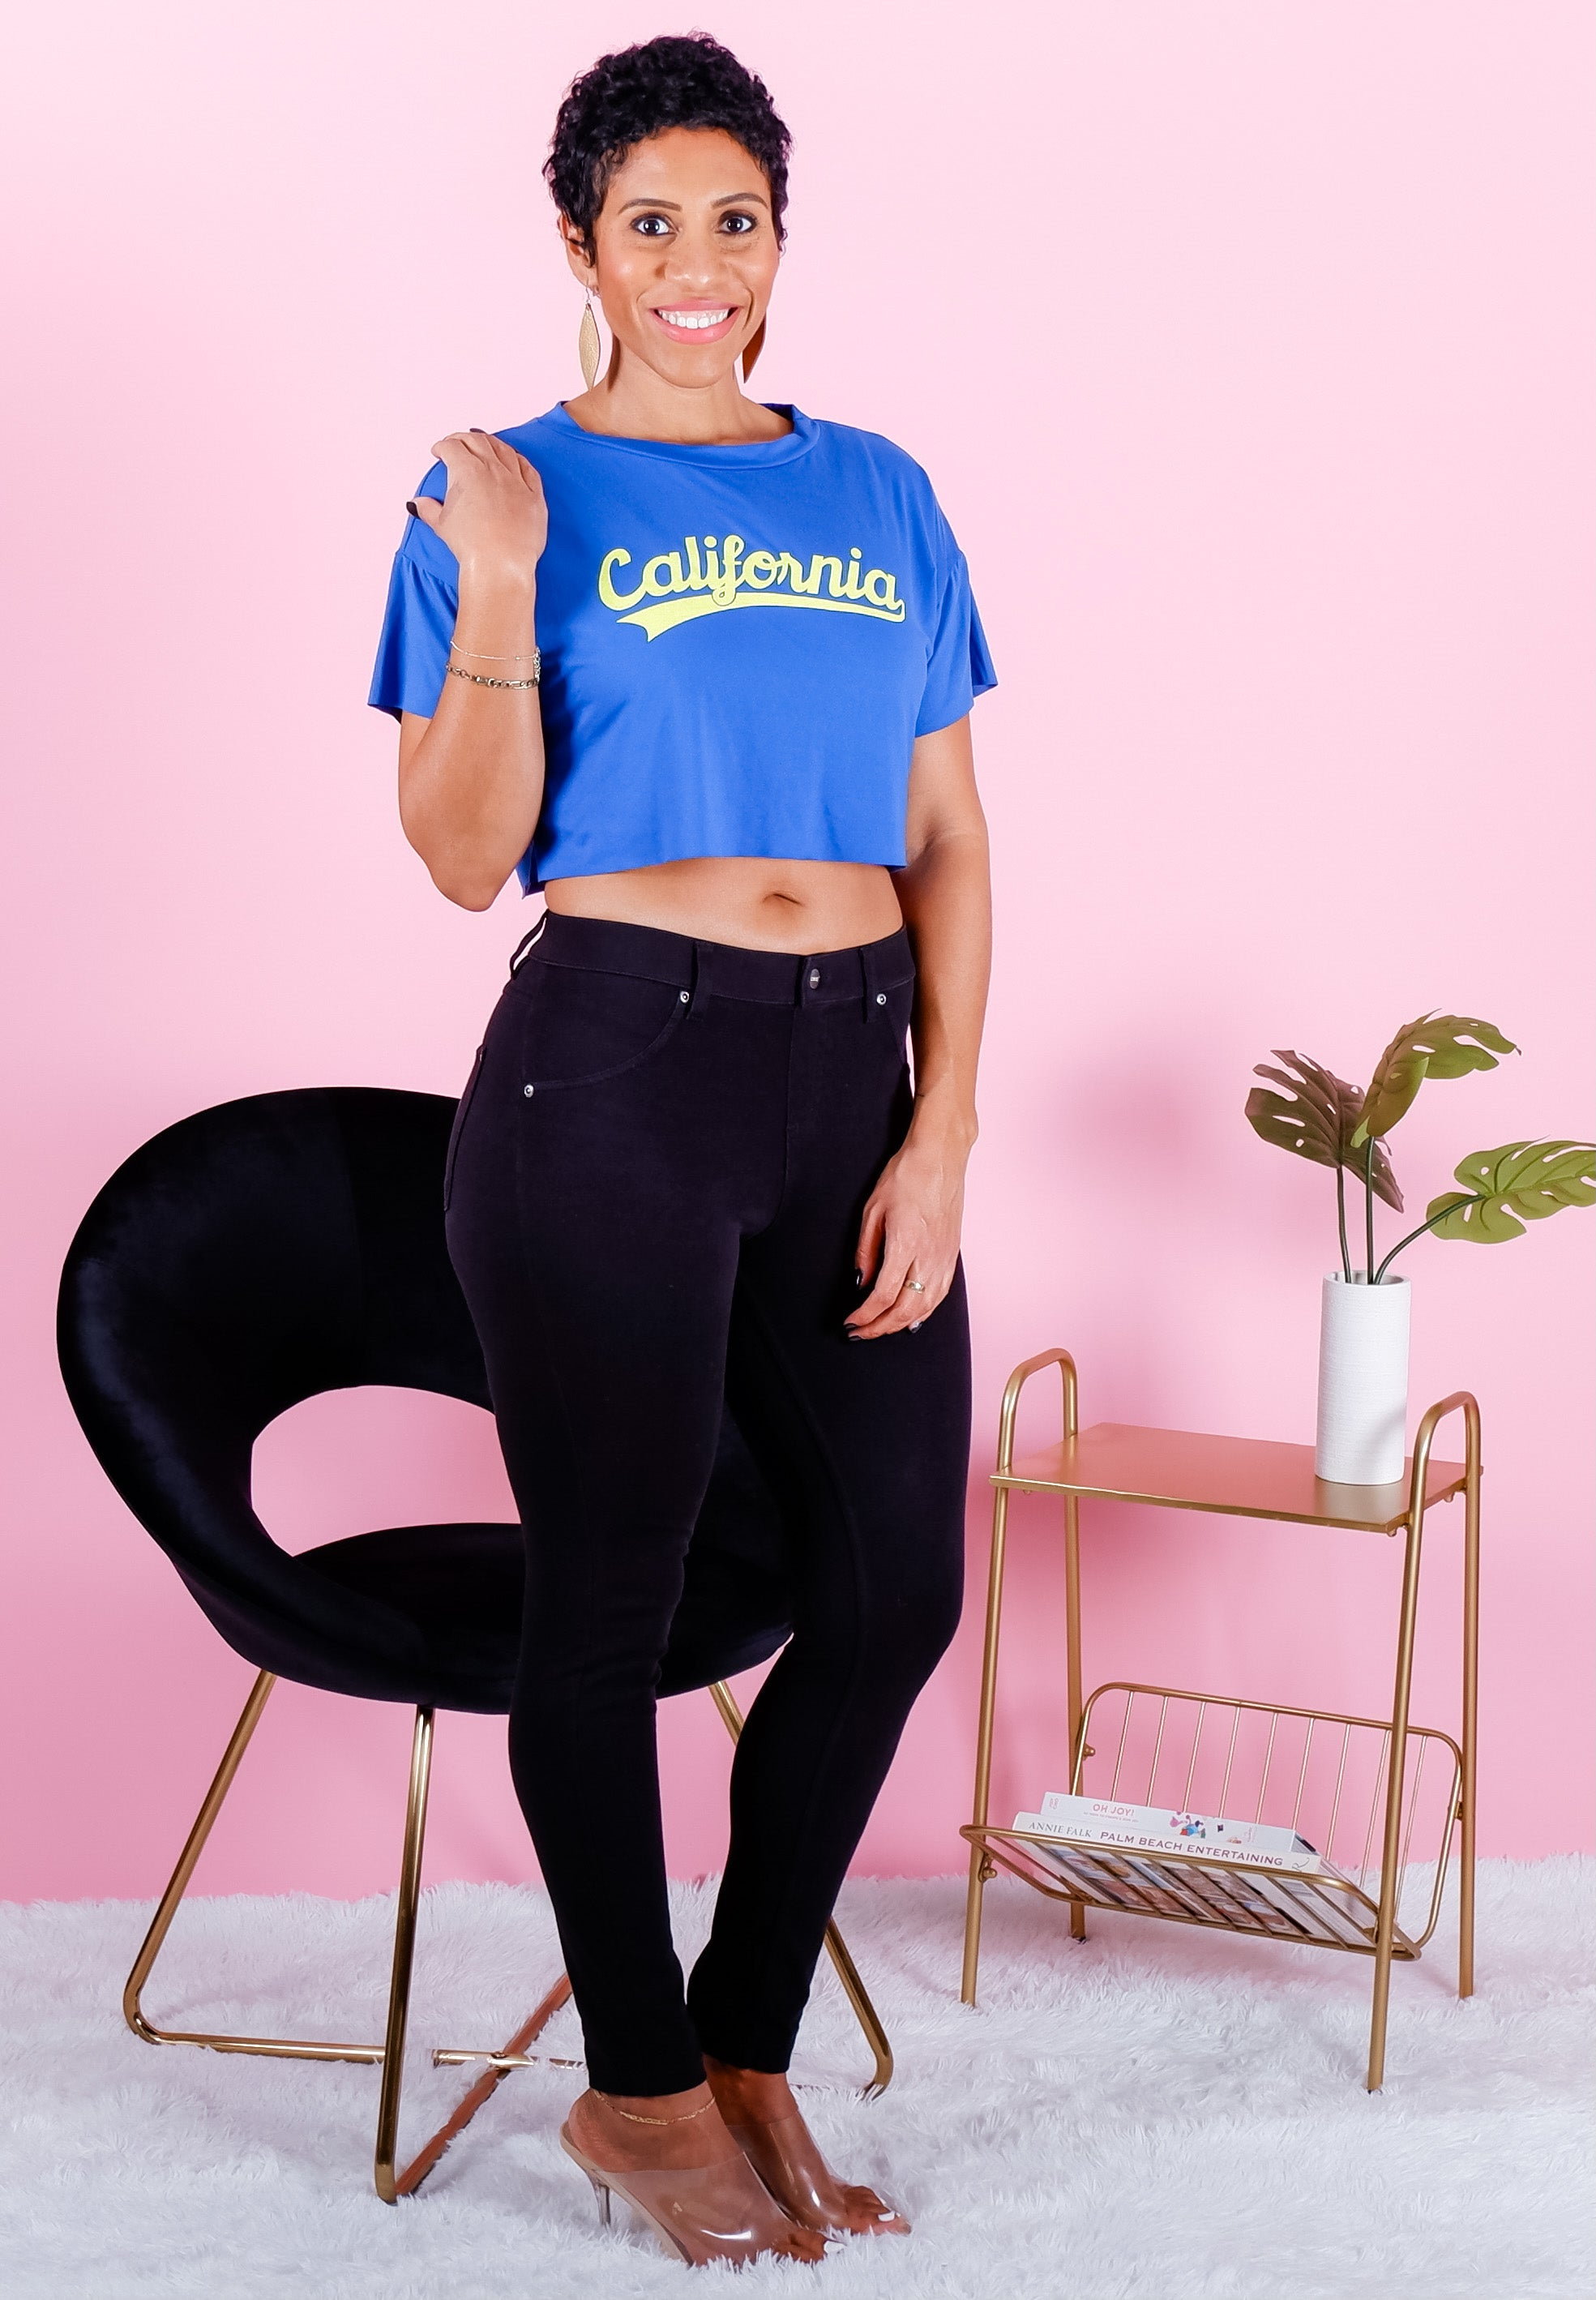 BLUE CALIFORNIA CROPPED GRAPHIC TEE